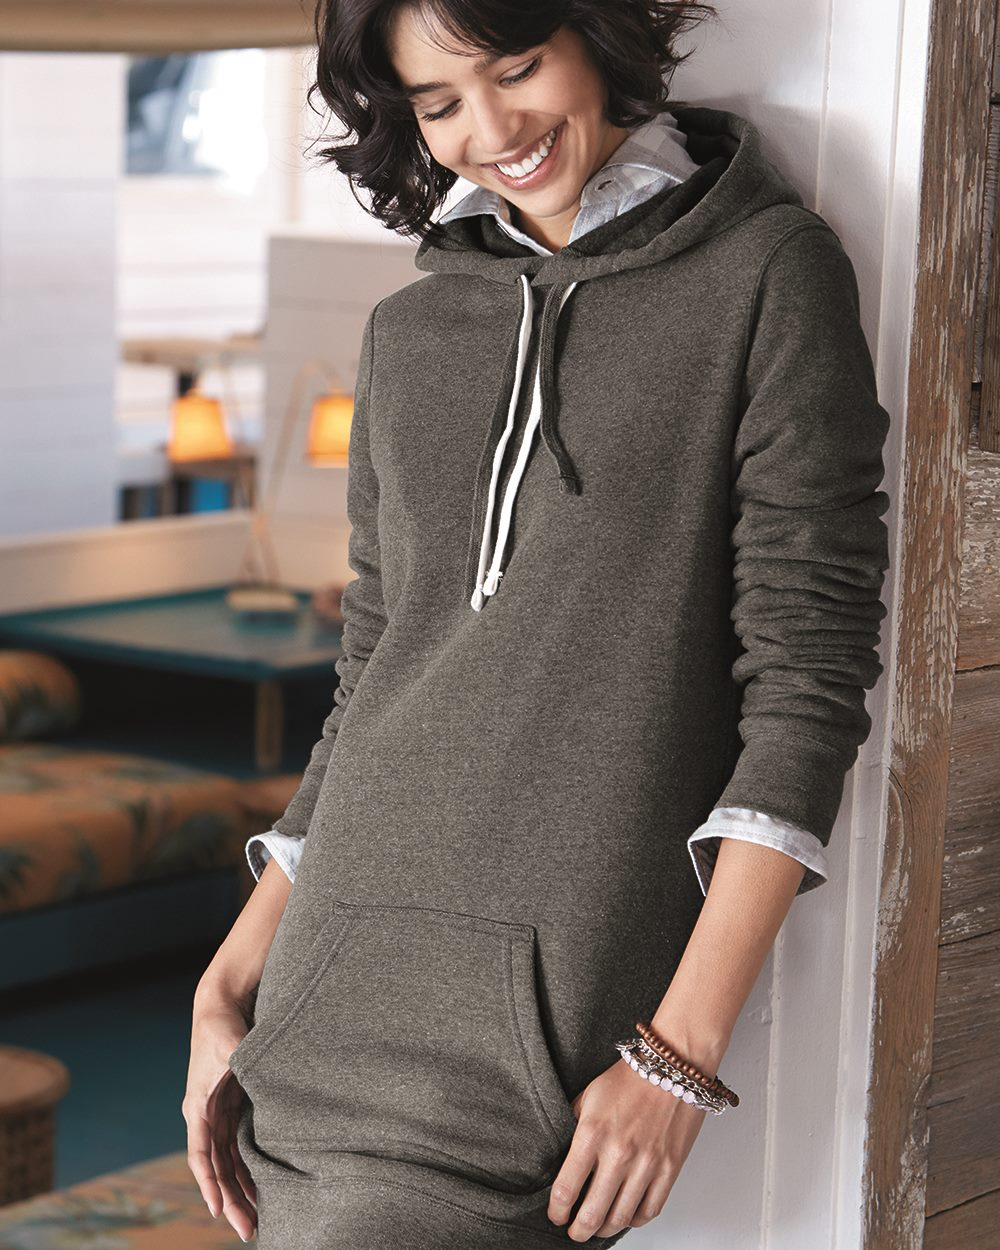 Independent Trading Co. - Women's Special Blend Hooded Pullover Dress blue dot apparel